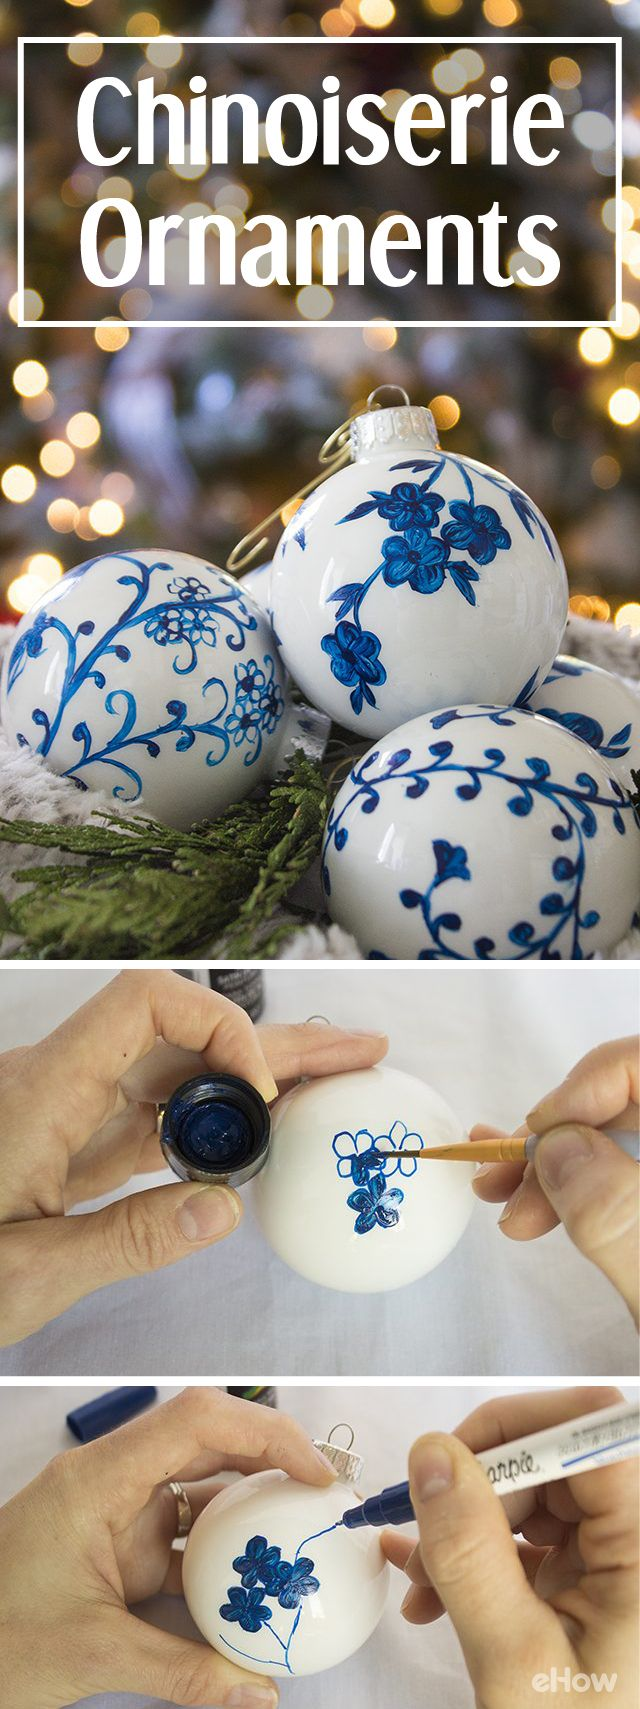 Chinoiserie china has beautiful patterns and classic colors, making them highly collectible and often expensive. Learning how to create your own ornaments with a simple Chinoiserie pattern allows you to get that expensive, collectible look for a fraction of the cost! DIY instructions here: http://www.ehow.com/how_12343056_beautiful-diy-chinoserie-ornaments.html?utm_source=pinterest.com&utm_medium=referral&utm_content=freestyle&utm_campaign=fanpage